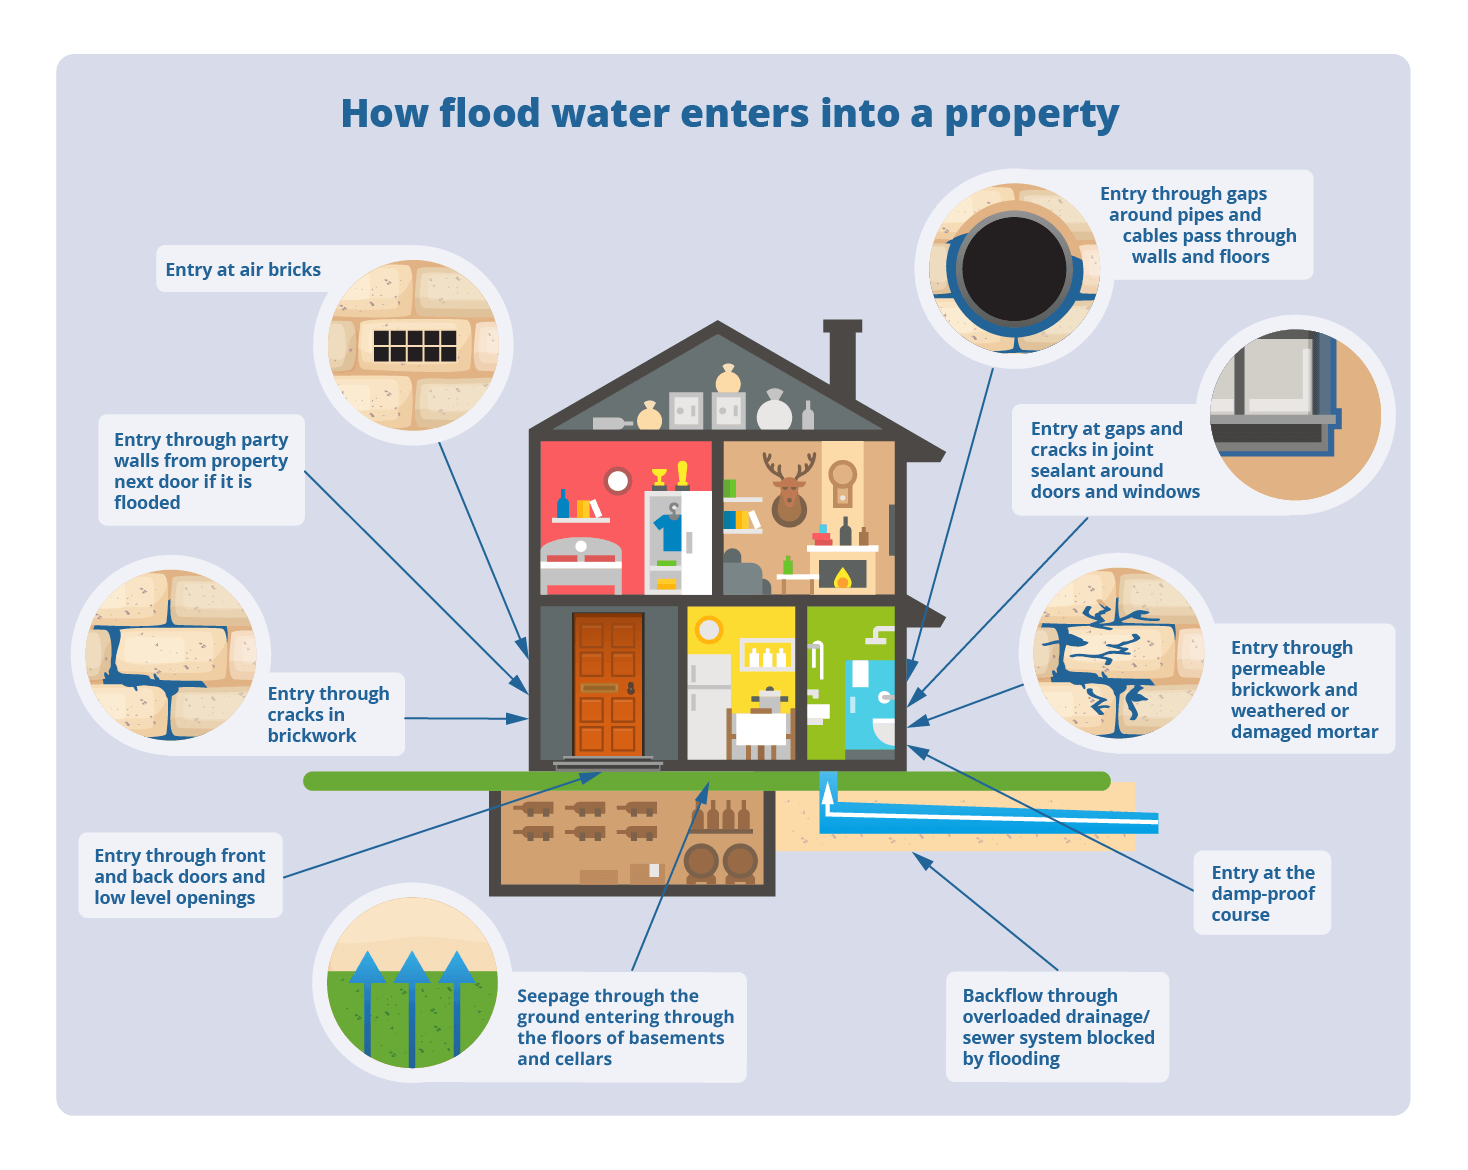 How flood water enters a property